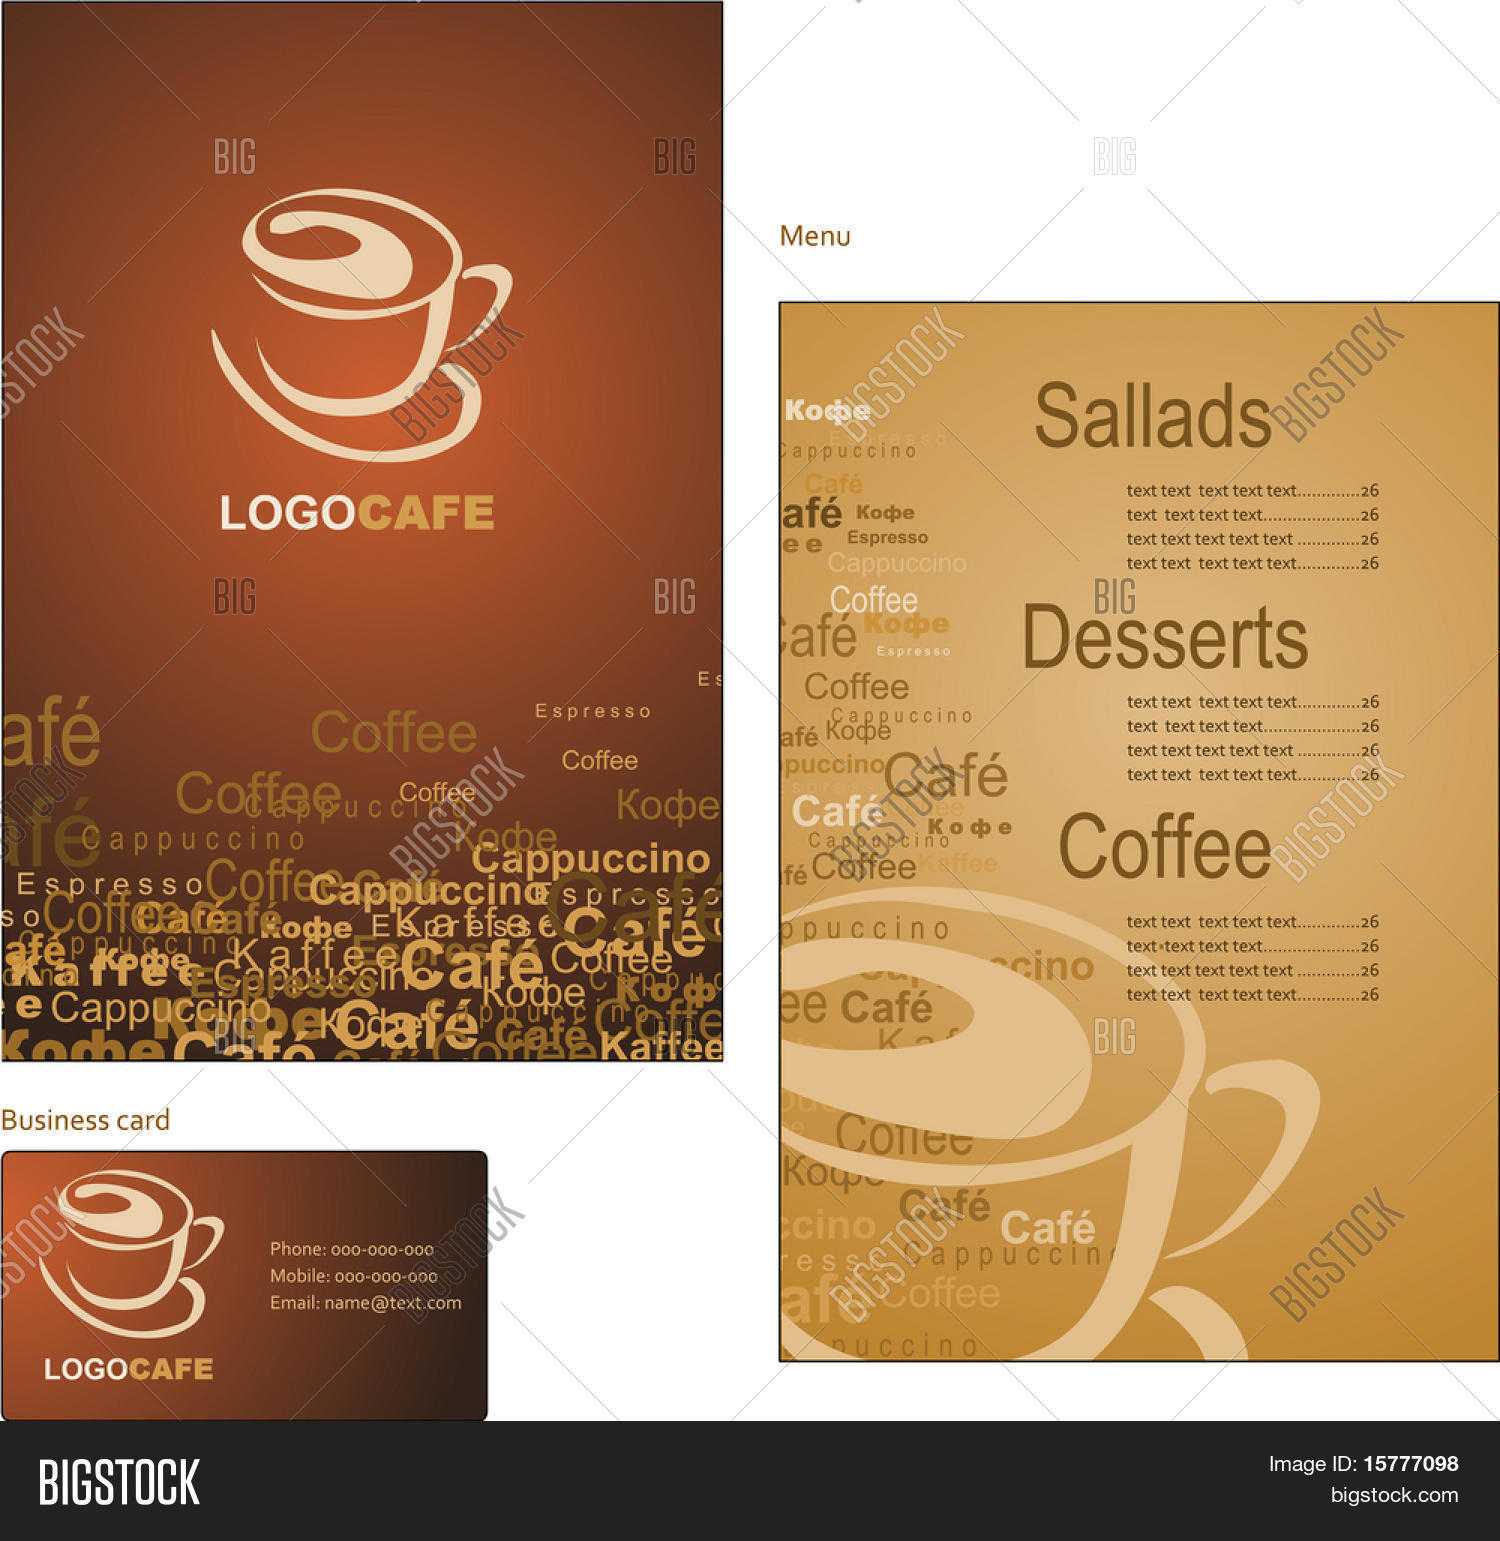 Template designs menu vector photo free trial bigstock close image preview image preview template designs of menu and business card accmission